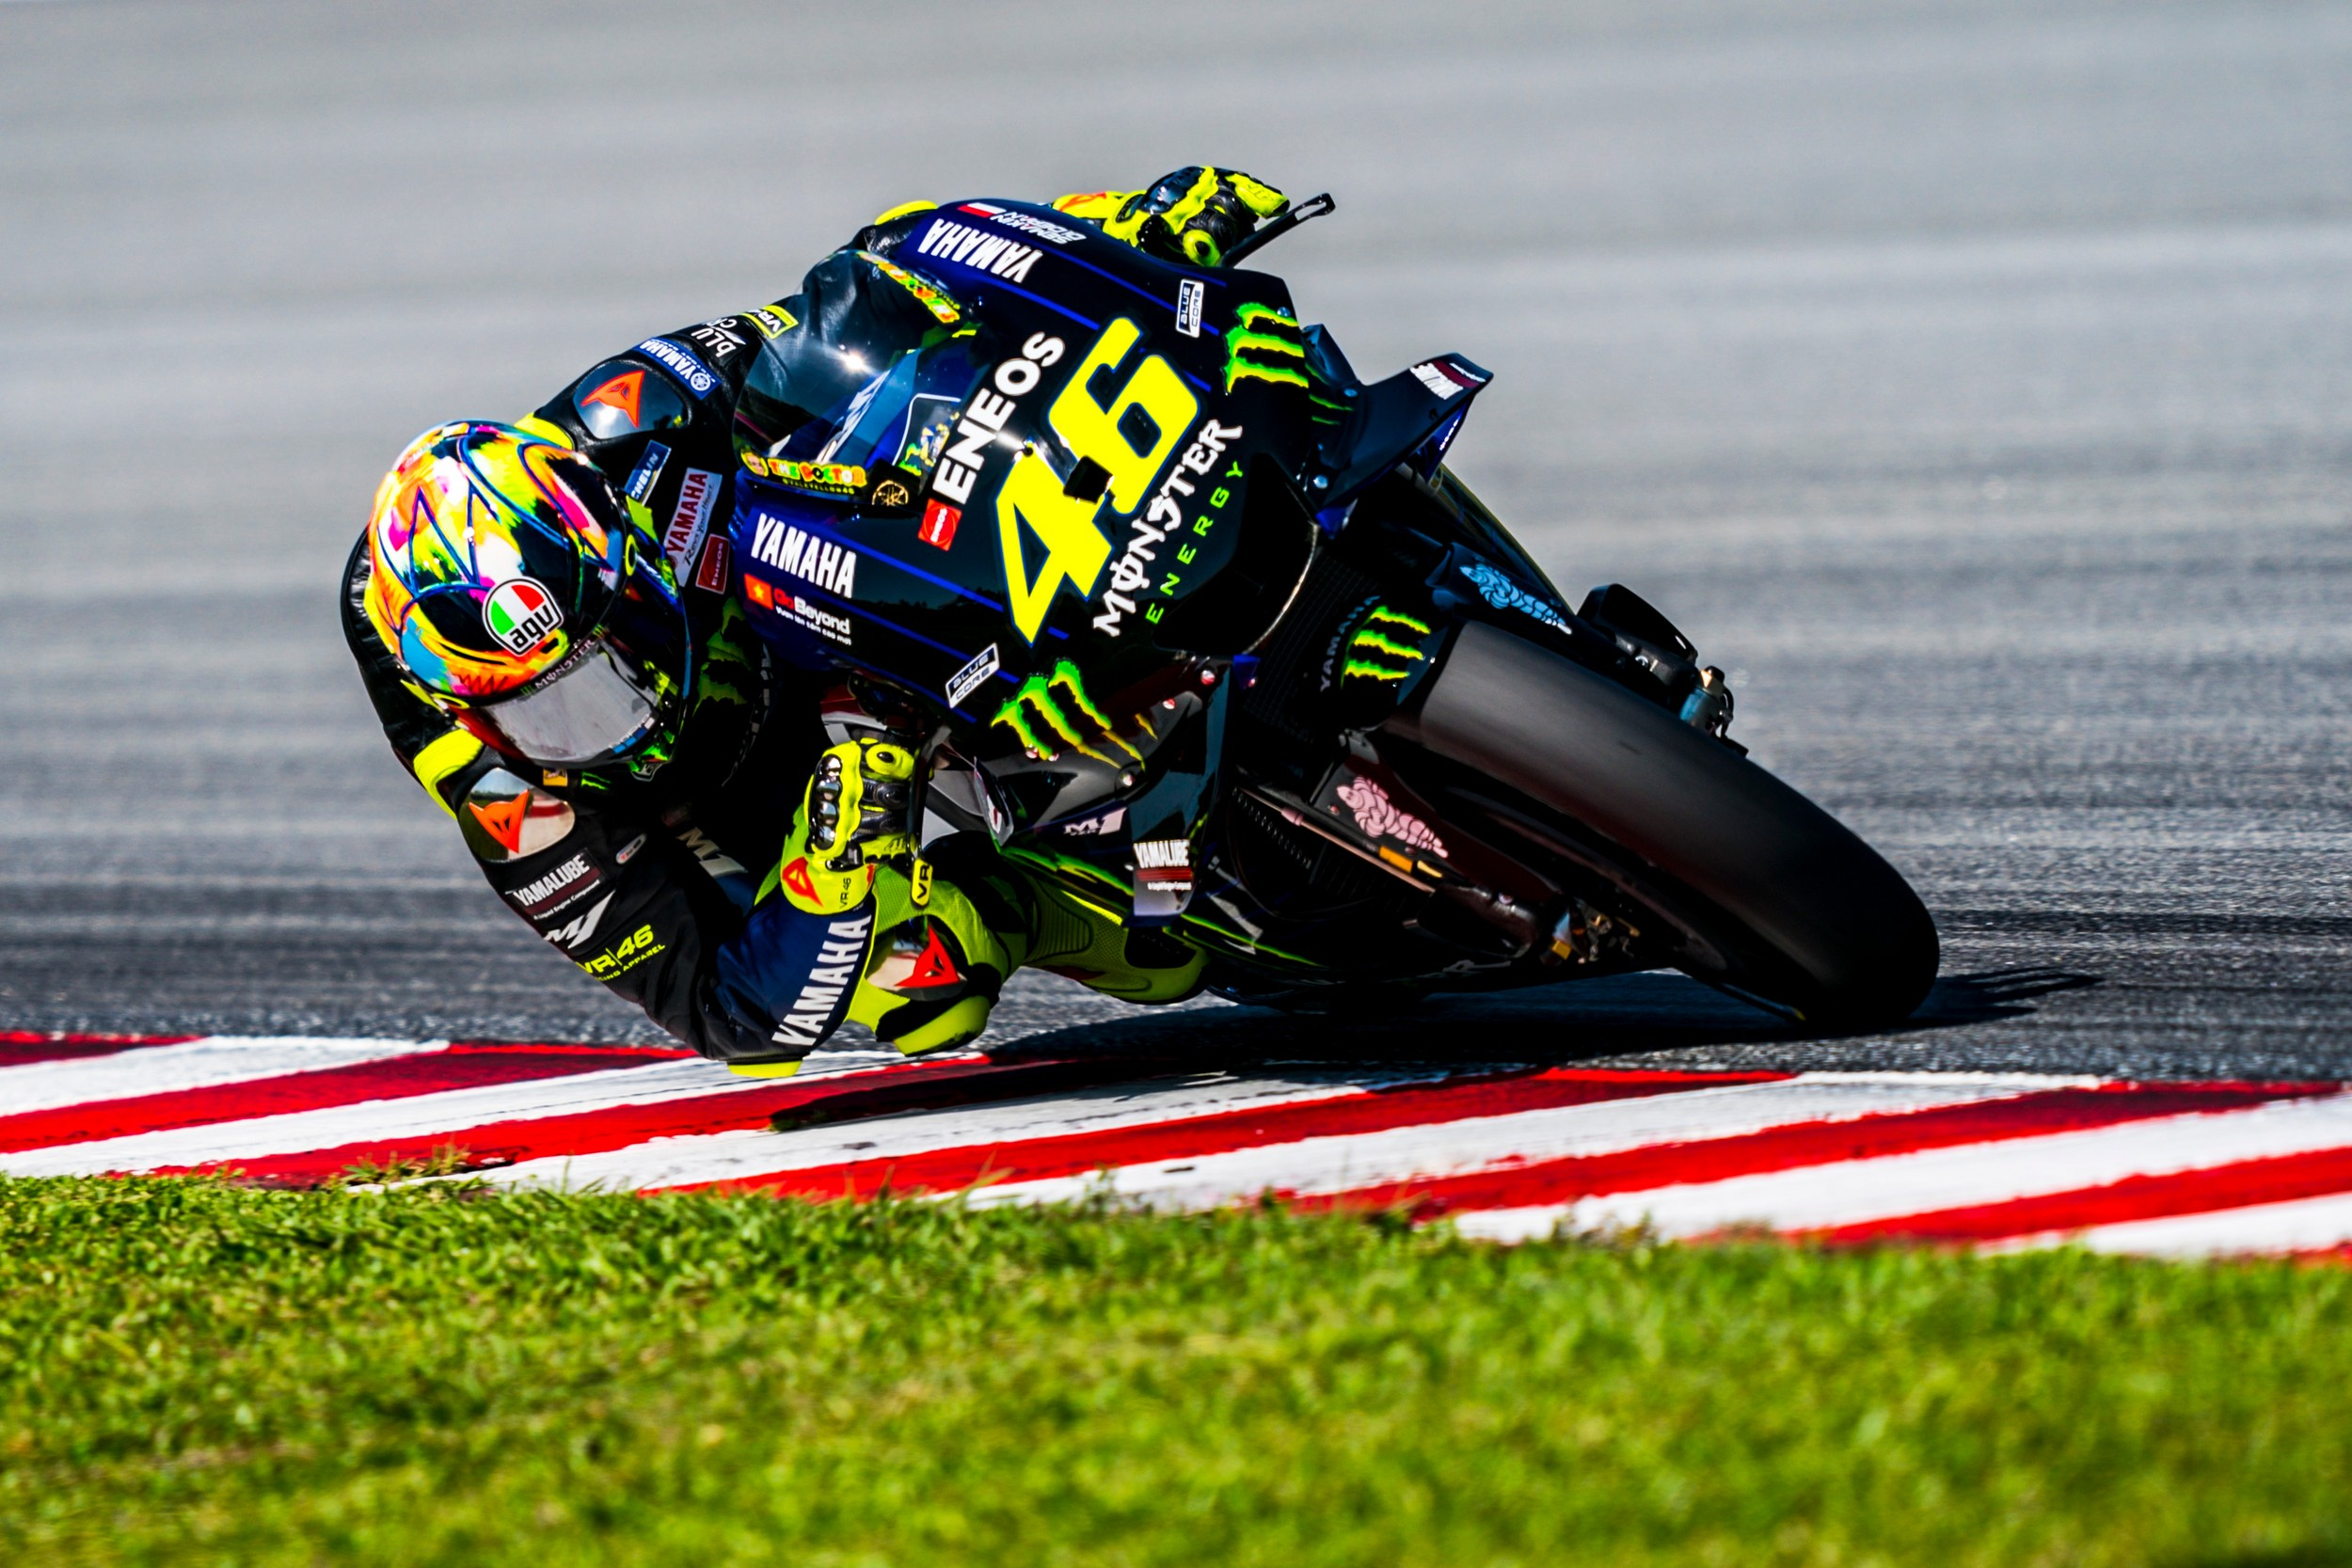 Motogp Calendario Tv8.Motogp 2019 Calendario Gran Premi Test Ufficiali